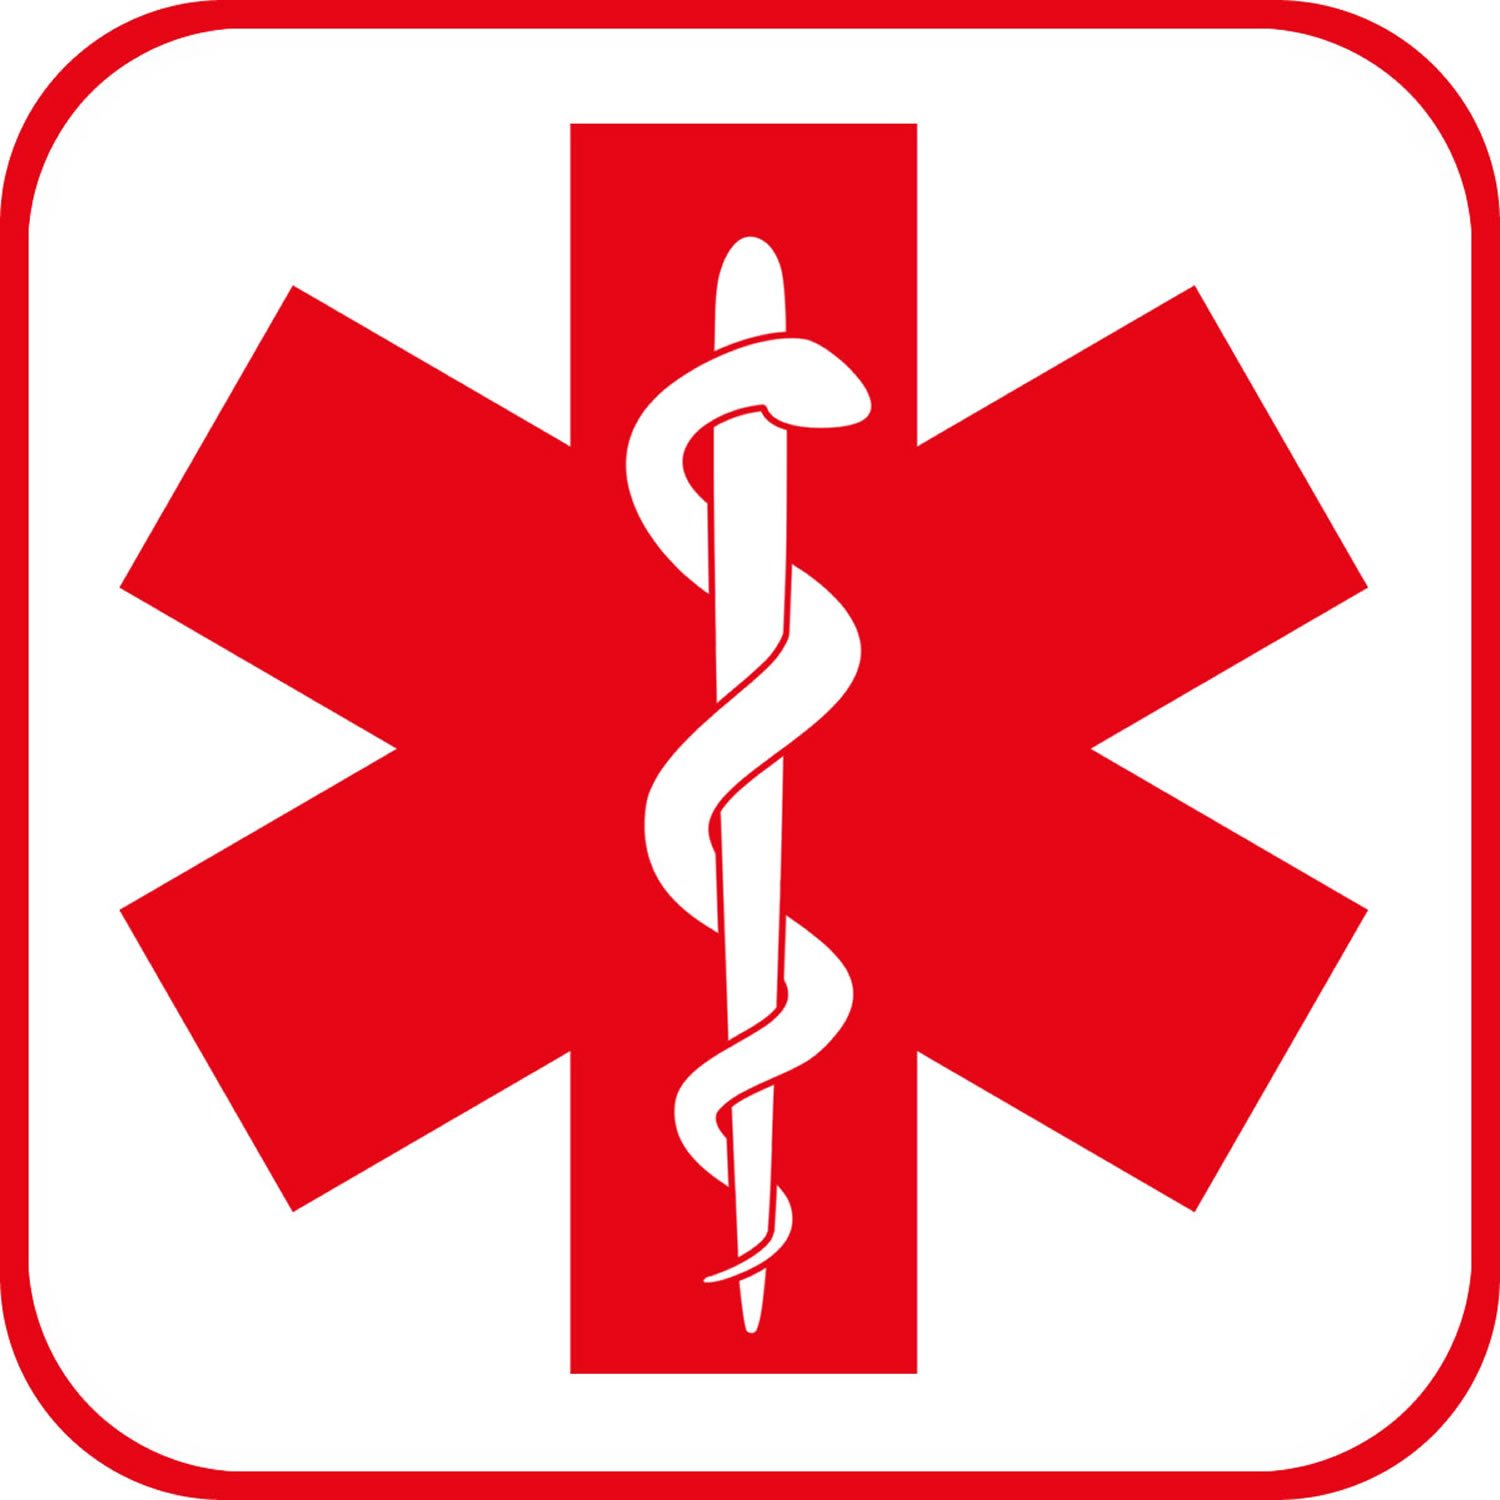 Red Cross clipart nurse symbol Medical Medical  & Collection